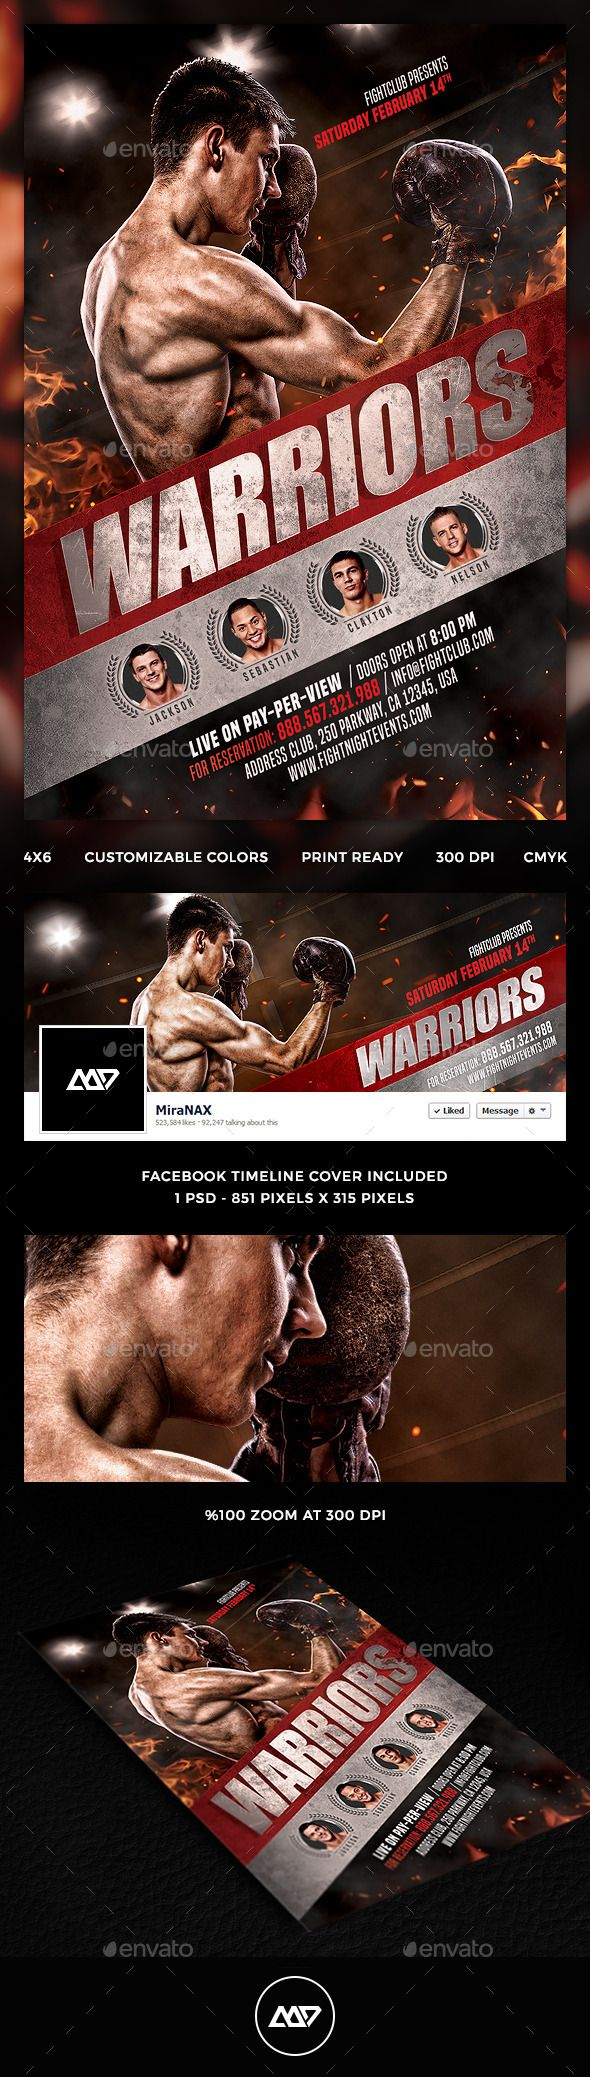 MMA Boxing Flyer Template PSD #design Download: http://graphicriver.net/item/mma-boxing-flyer/12965730?ref=ksioks